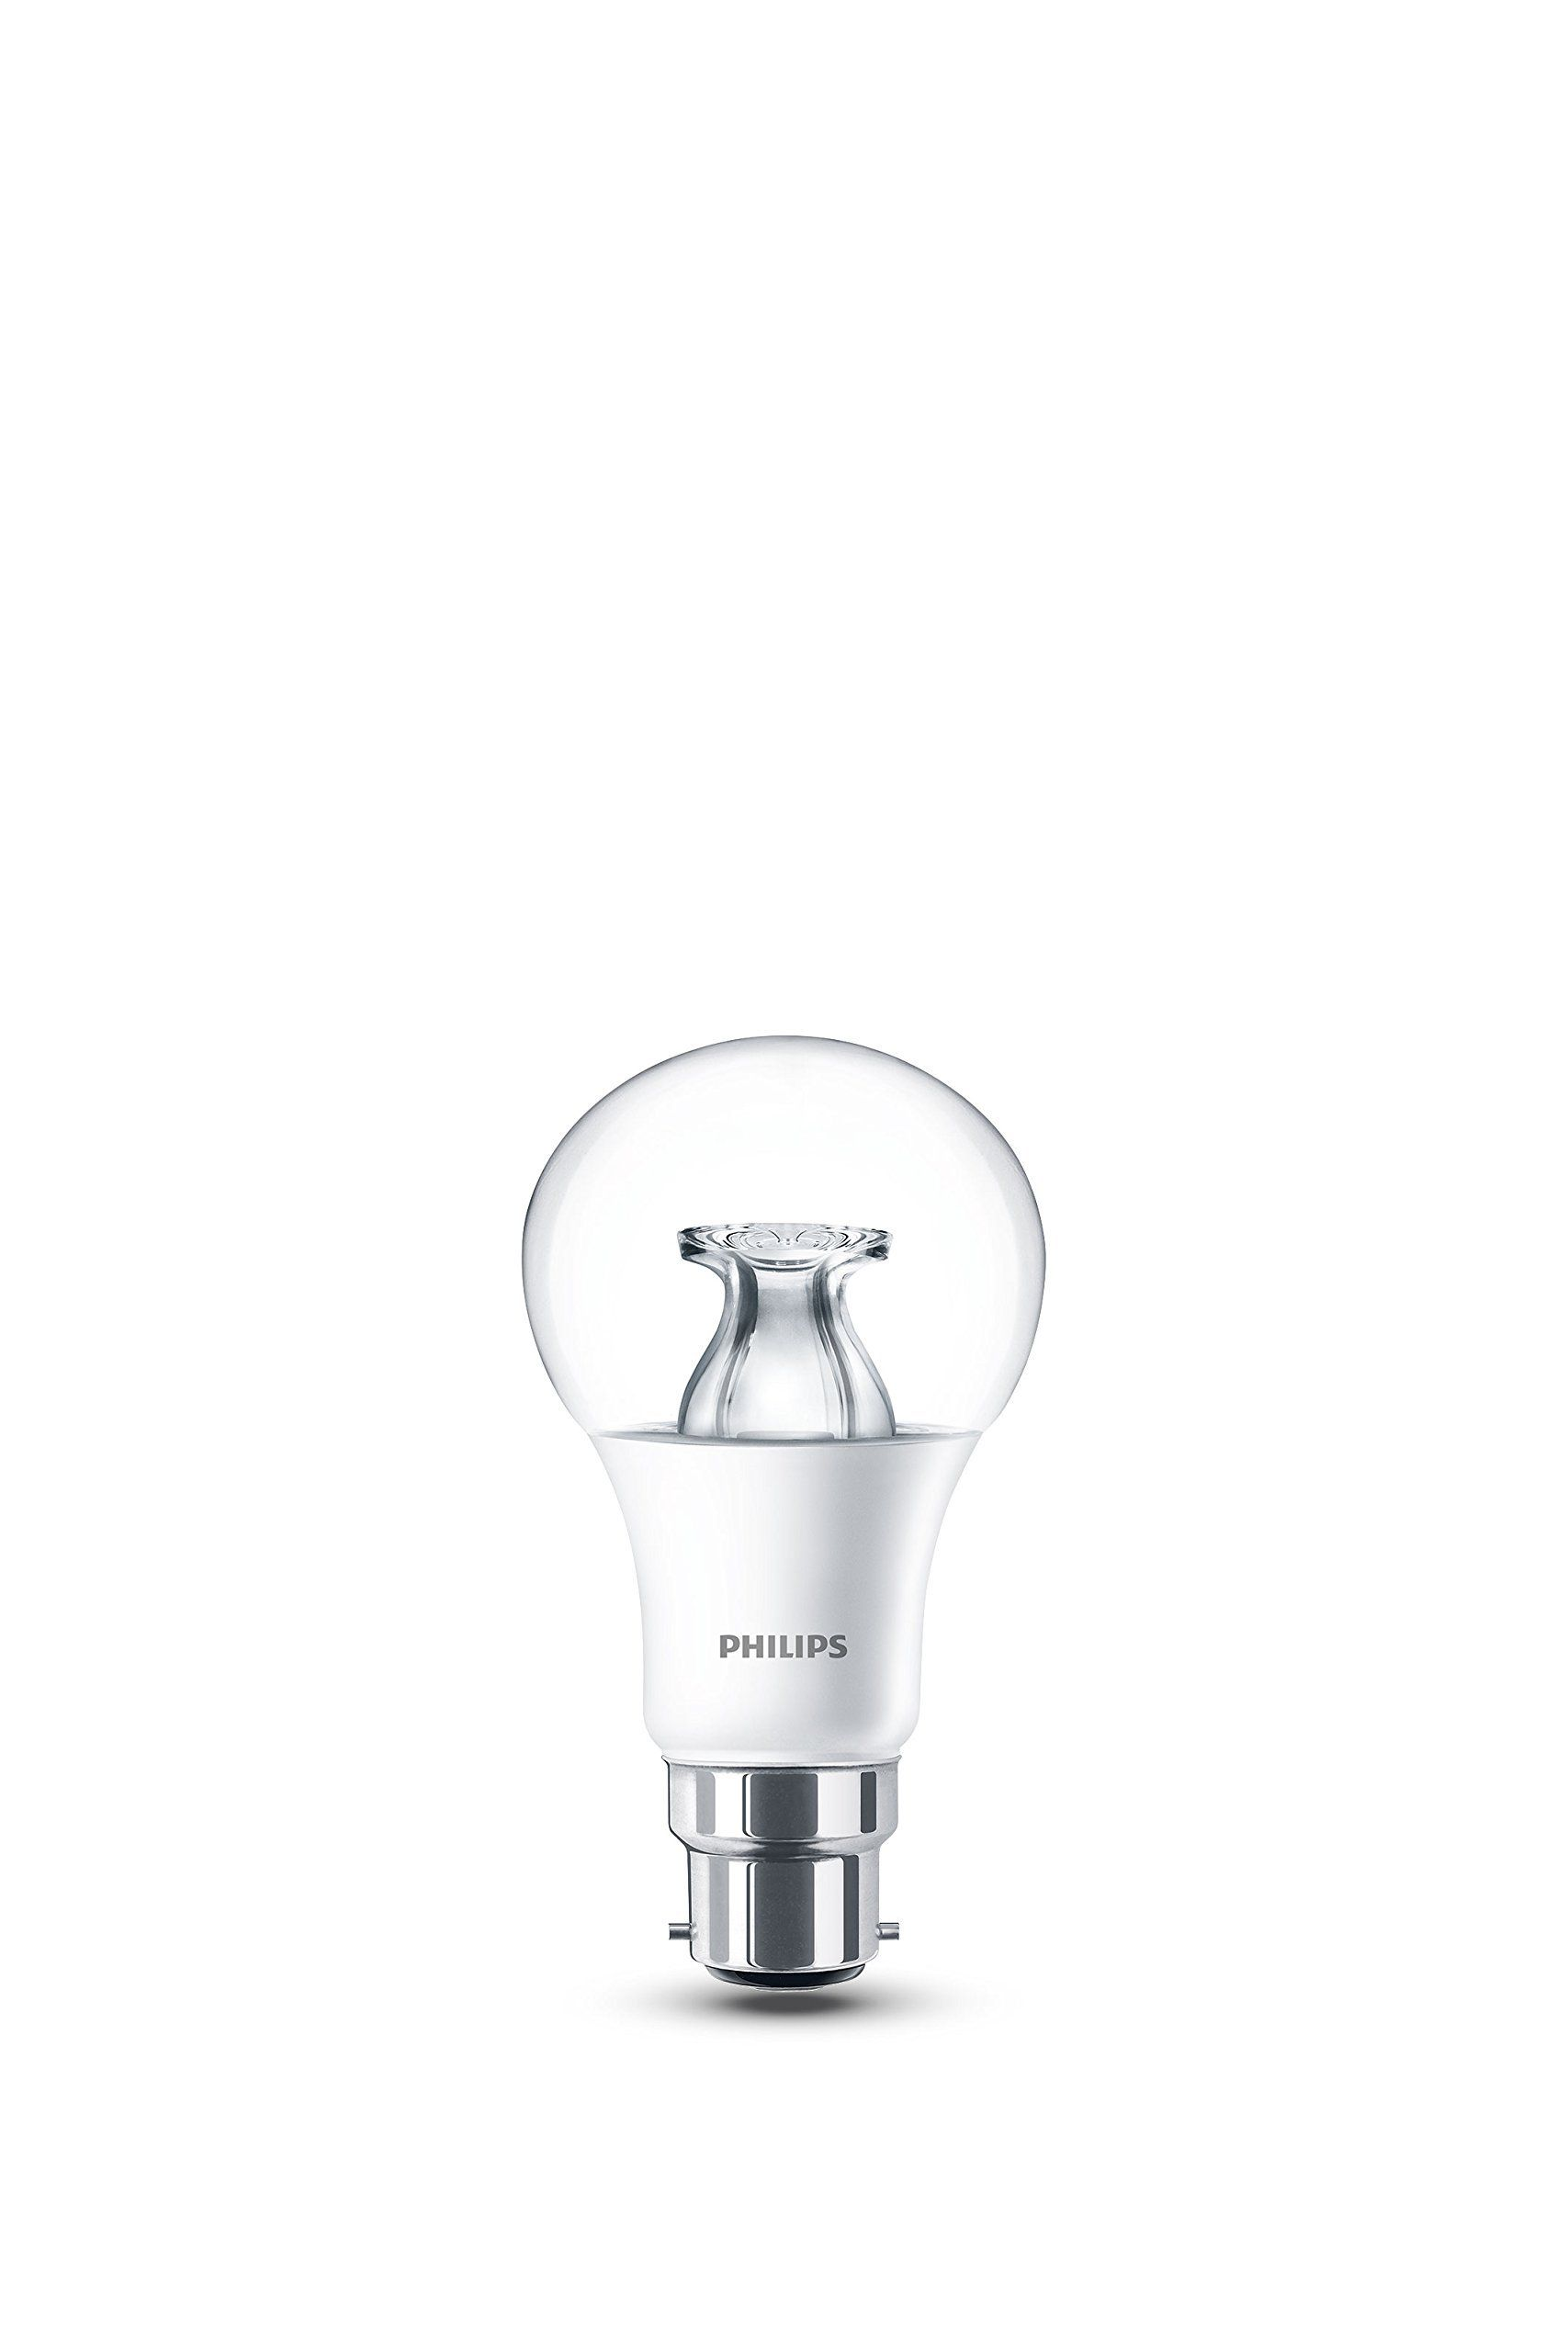 Philips Led Warm Glow B22 Bayonet Cap Dimmable Light Bulb 8 5 W 60 W Warm White Different Tones For Differen Philips Led Led Bulb Dimmable Light Bulbs